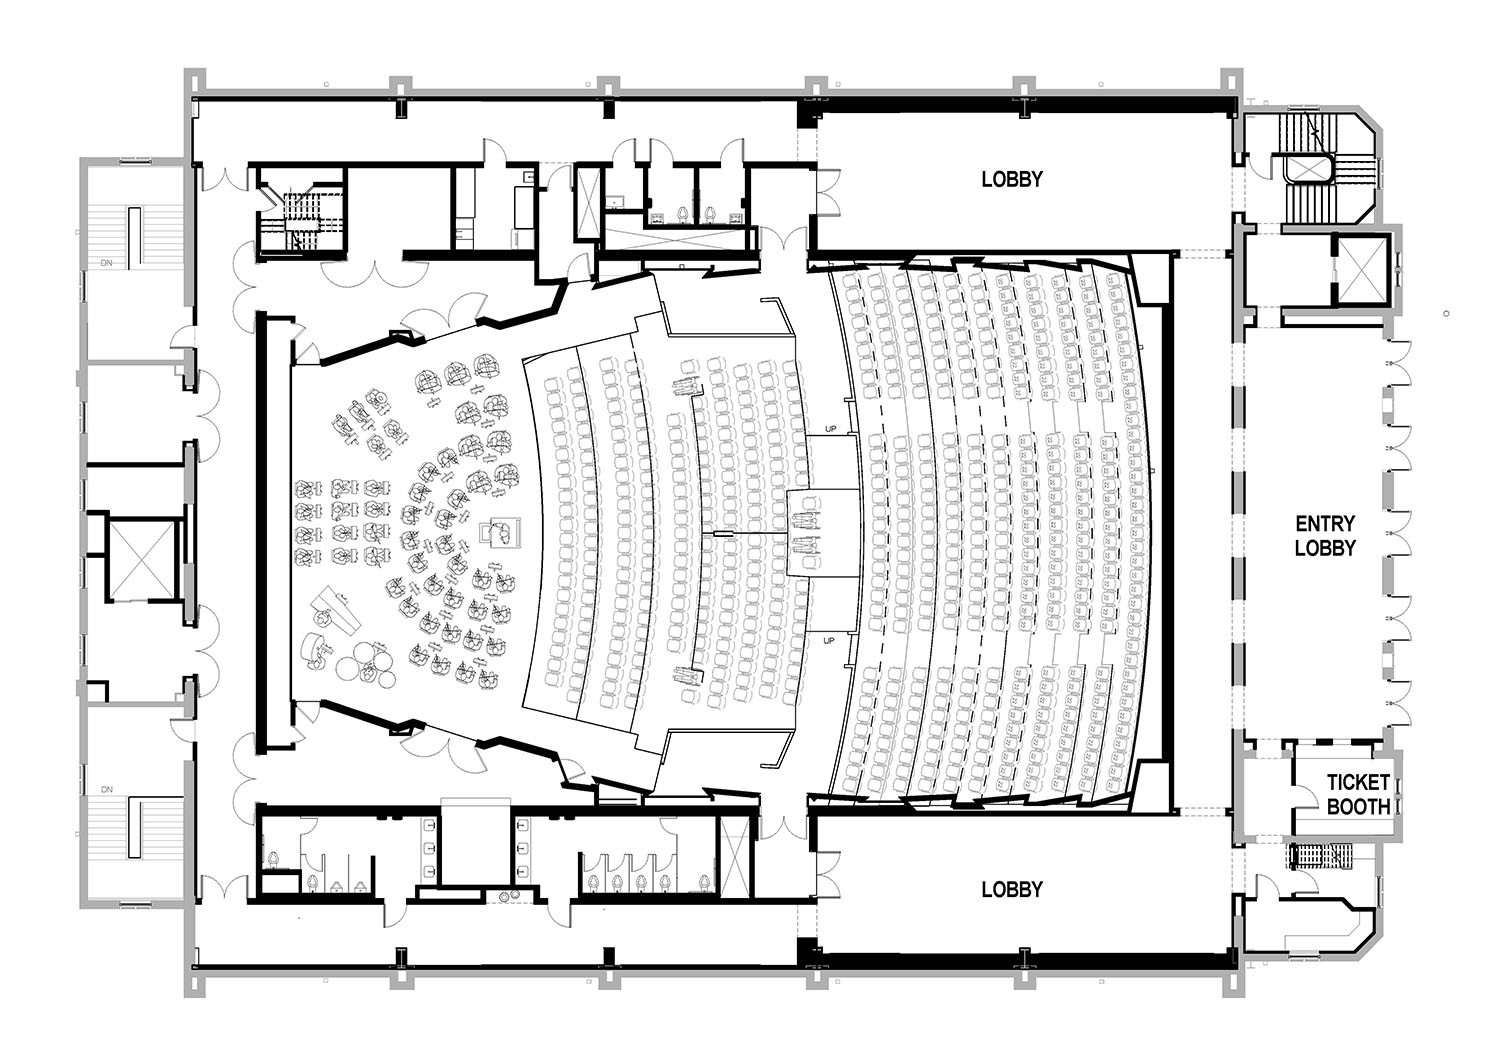 130404401 in addition Stv9380 And Stv9381 Vertical Efficient additionally 262827328233515218 furthermore Home Layout moreover Tech Specifications. on acoustic theater design